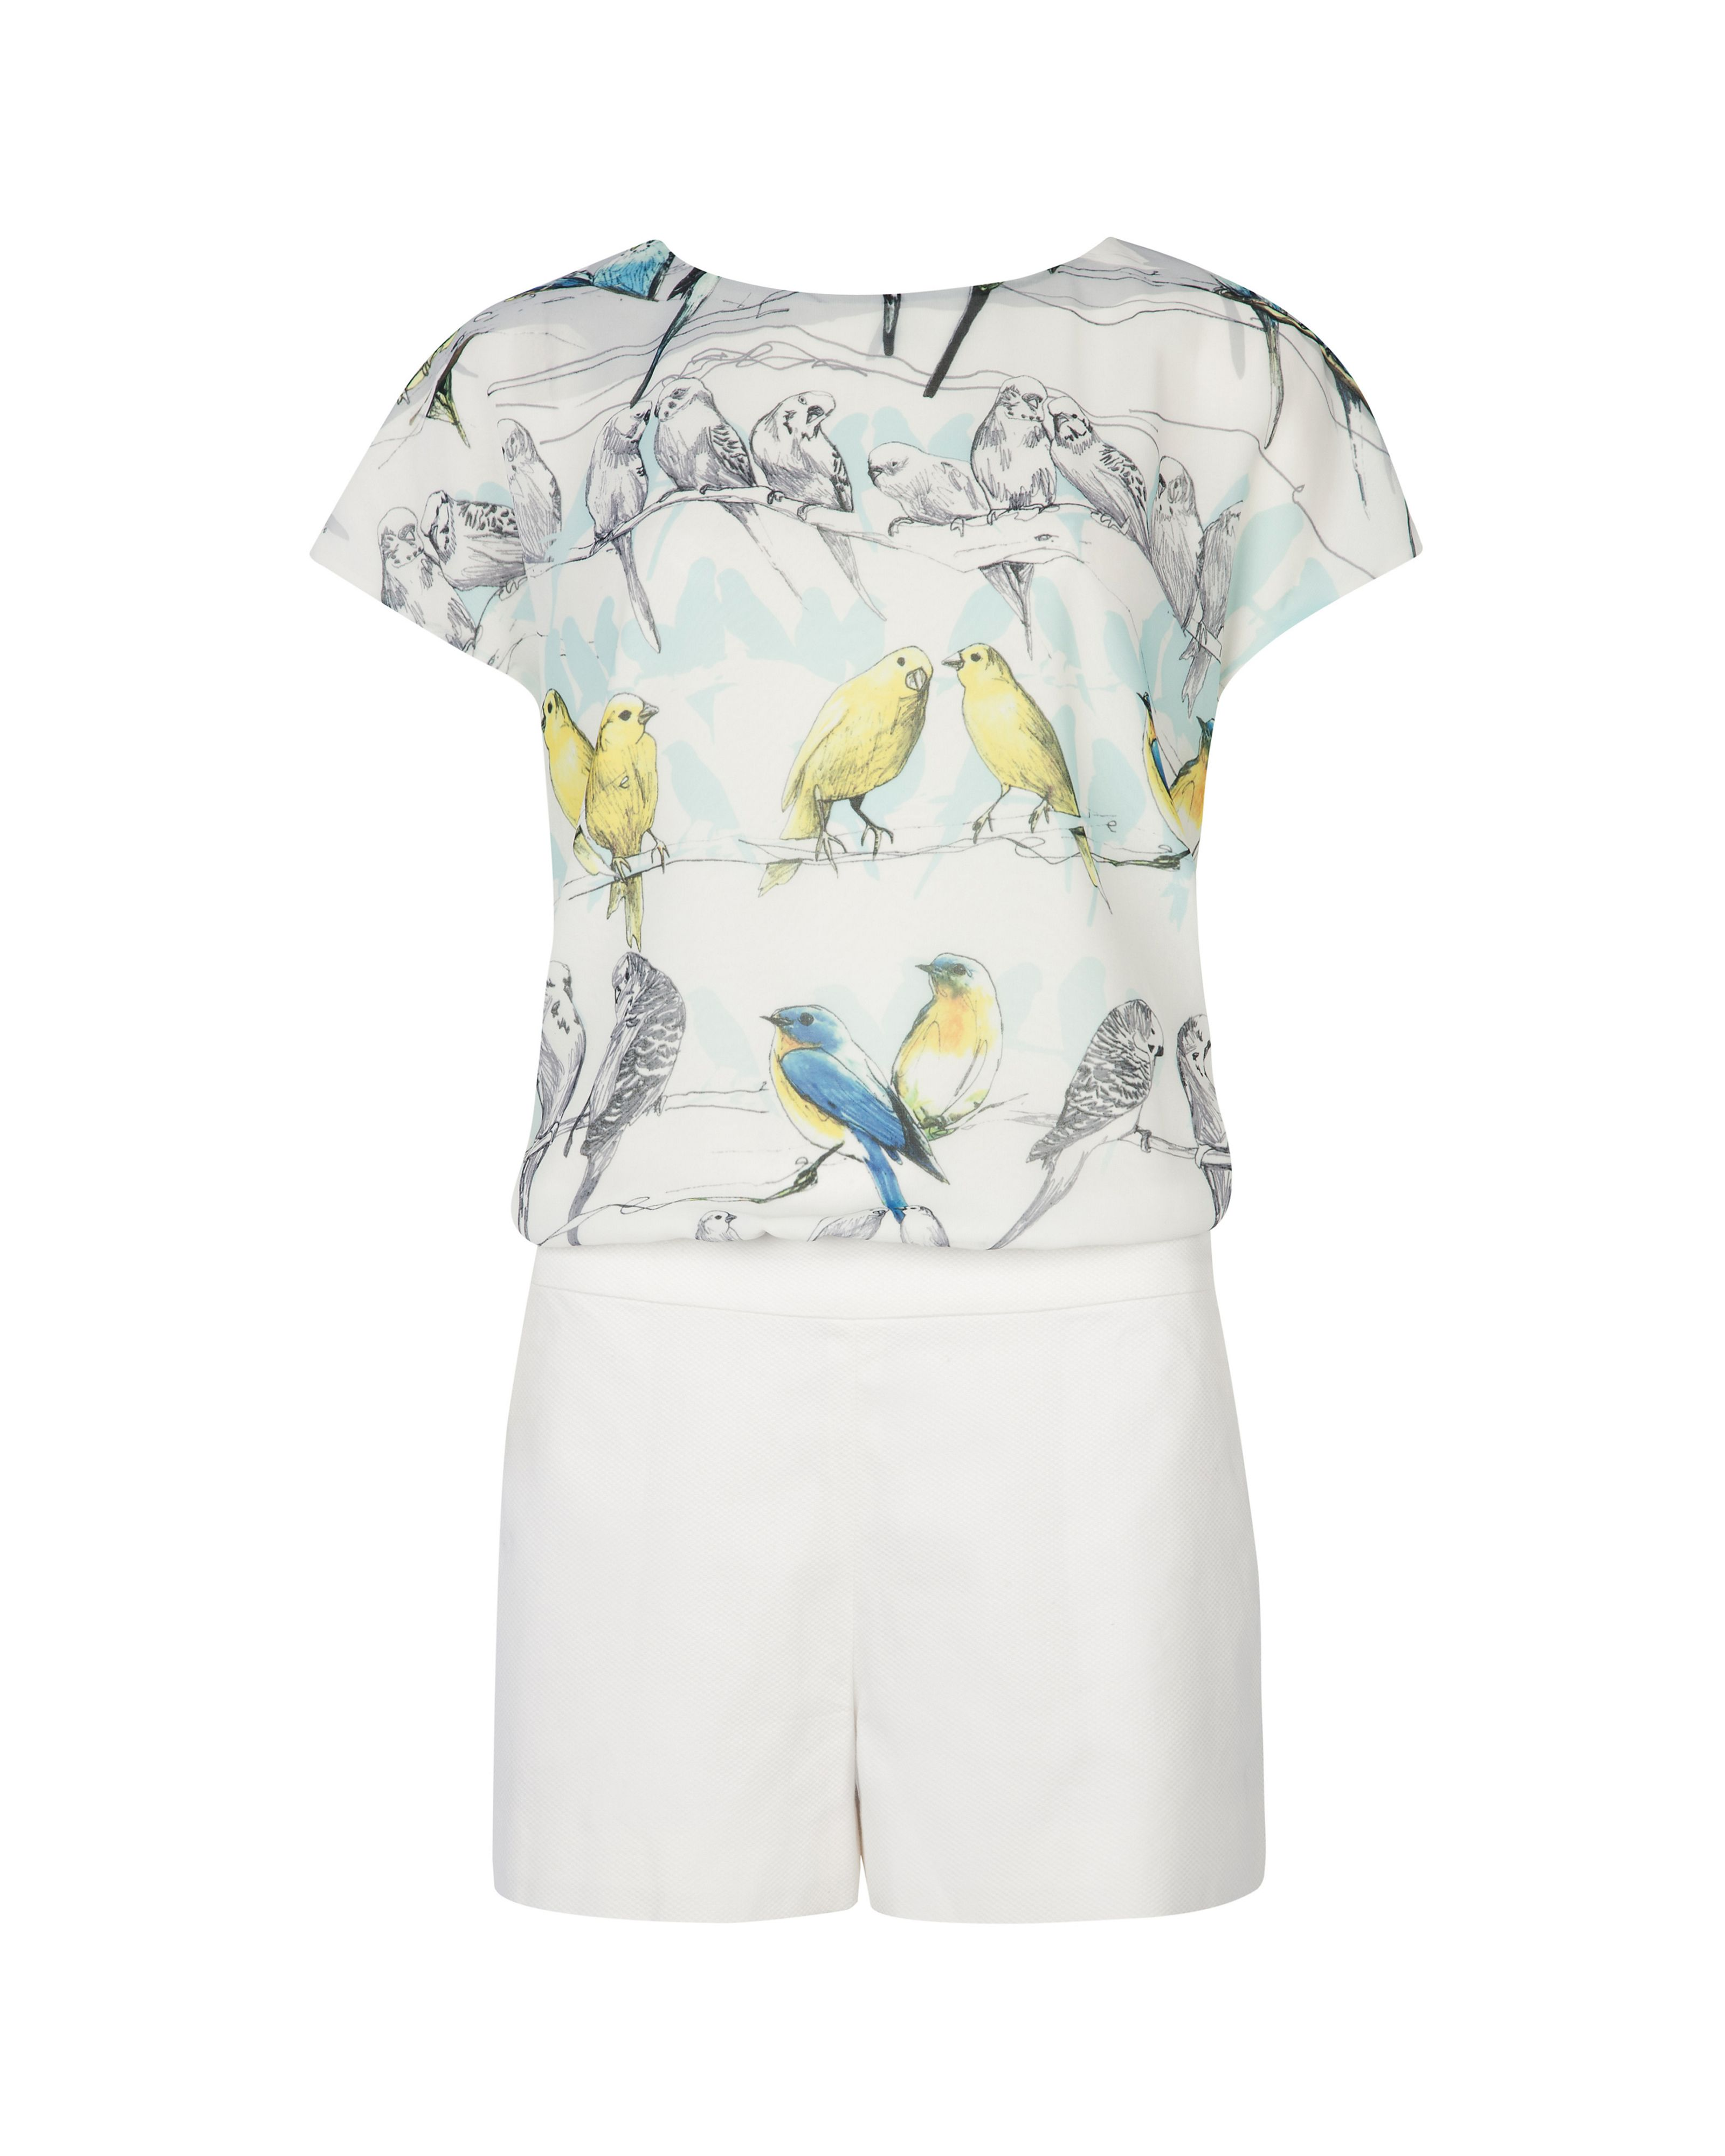 Kloe canary print playsuit